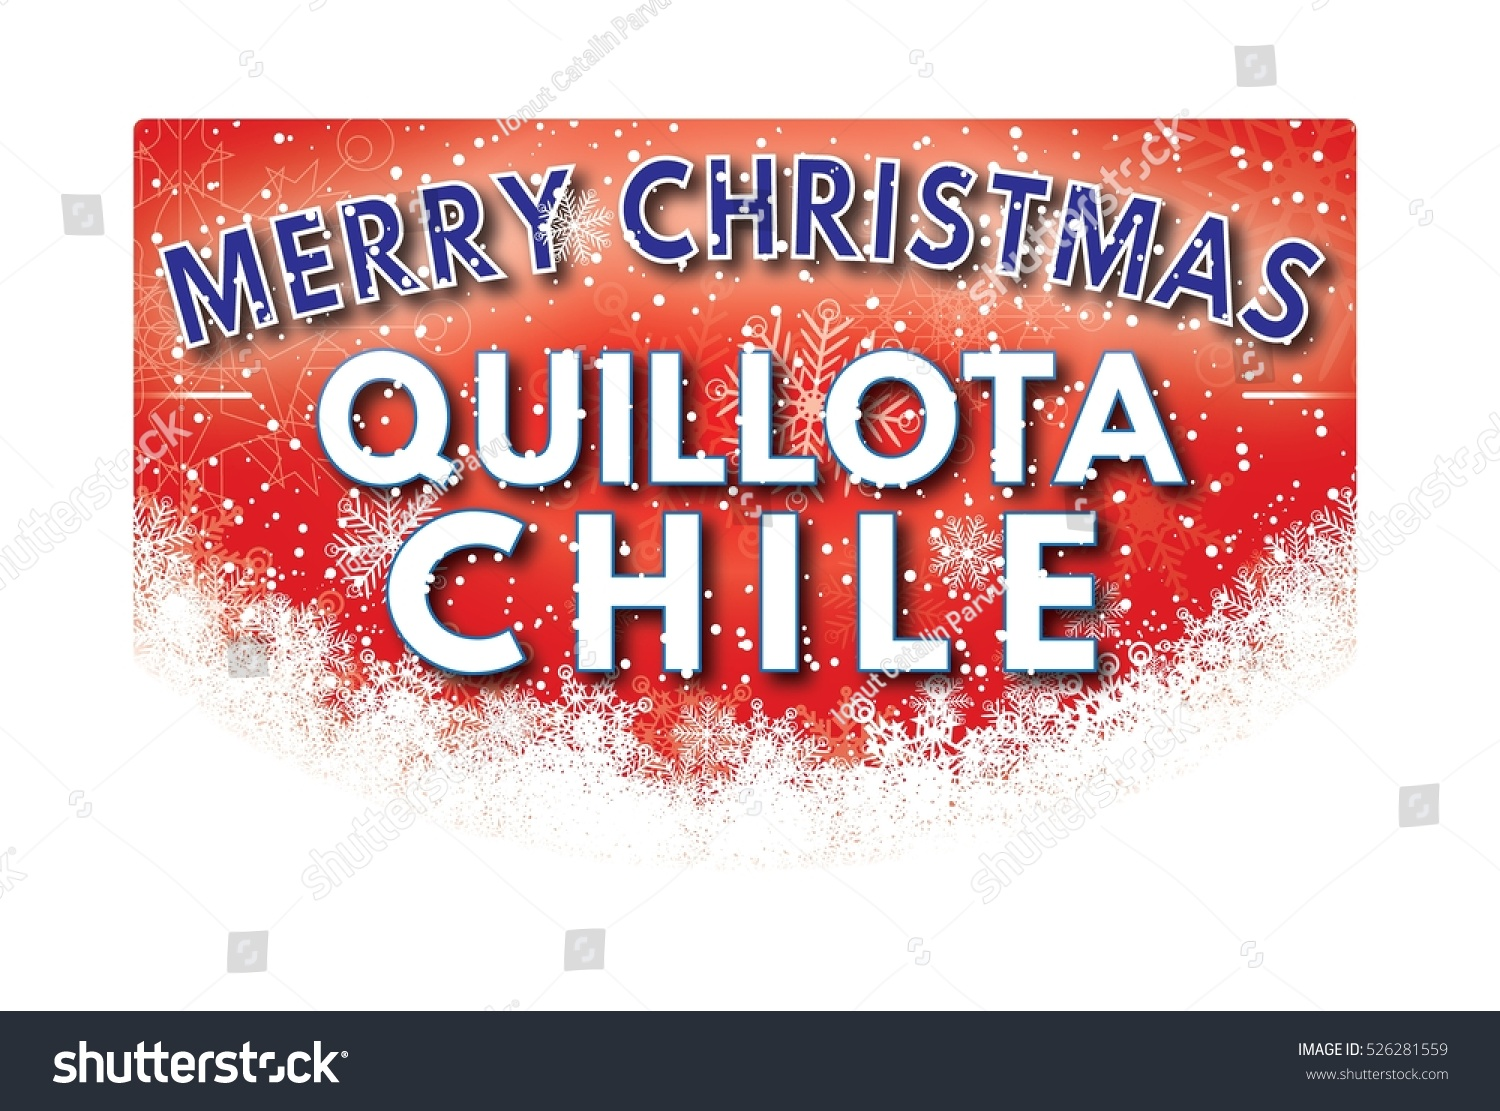 how to say merry christmas in chile